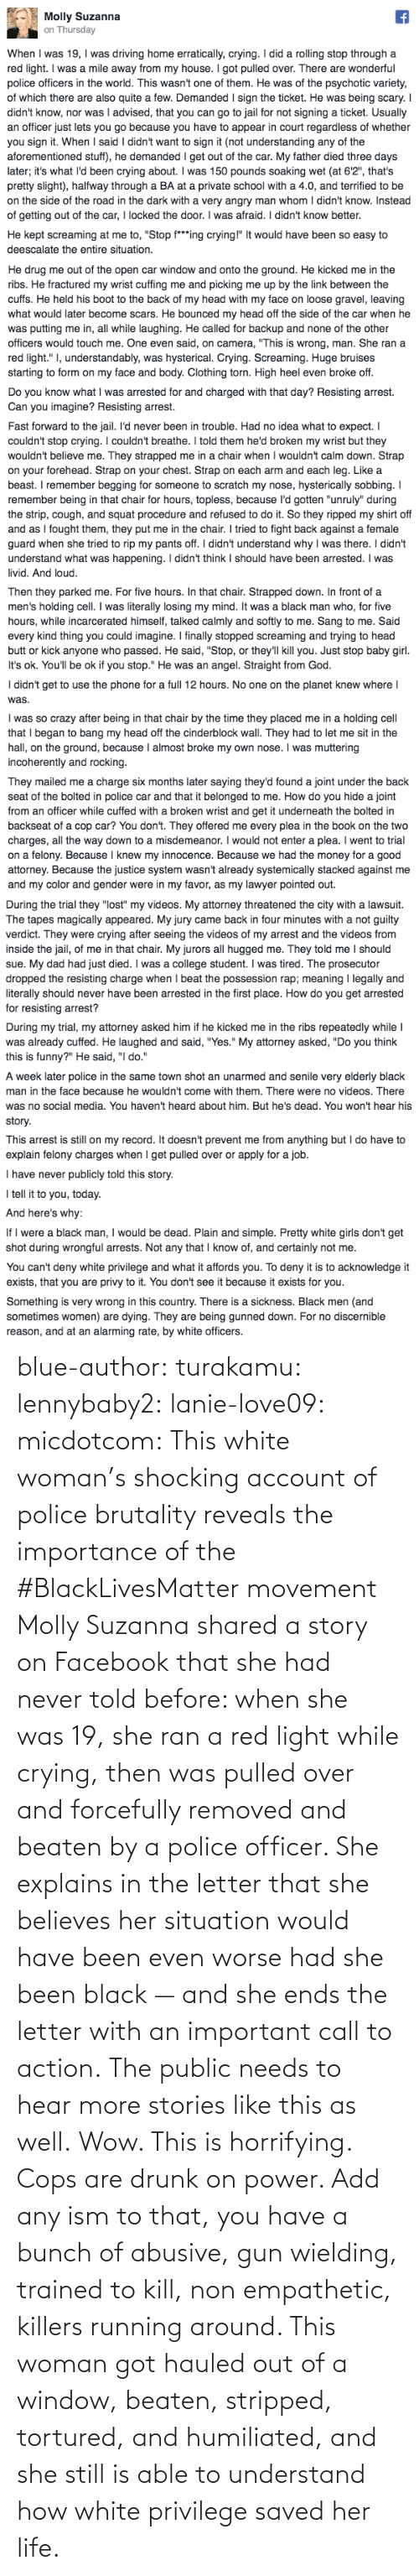 Situation: blue-author: turakamu:  lennybaby2:  lanie-love09:  micdotcom:  This white woman's shocking account of police brutality reveals the importance of the #BlackLivesMatter movement Molly Suzanna shared a story on Facebook that she had never told before: when she was 19, she ran a red light while crying, then was pulled over and forcefully removed and beaten by a police officer. She explains in the letter that she believes her situation would have been even worse had she been black — and she ends the letter with an important call to action.  The public needs to hear more stories like this as well.  Wow. This is horrifying.  Cops are drunk on power. Add any ism to that, you have a bunch of abusive, gun wielding, trained to kill, non empathetic, killers running around.    This woman got hauled out of a window, beaten, stripped, tortured, and humiliated, and she still is able to understand how white privilege saved her life.